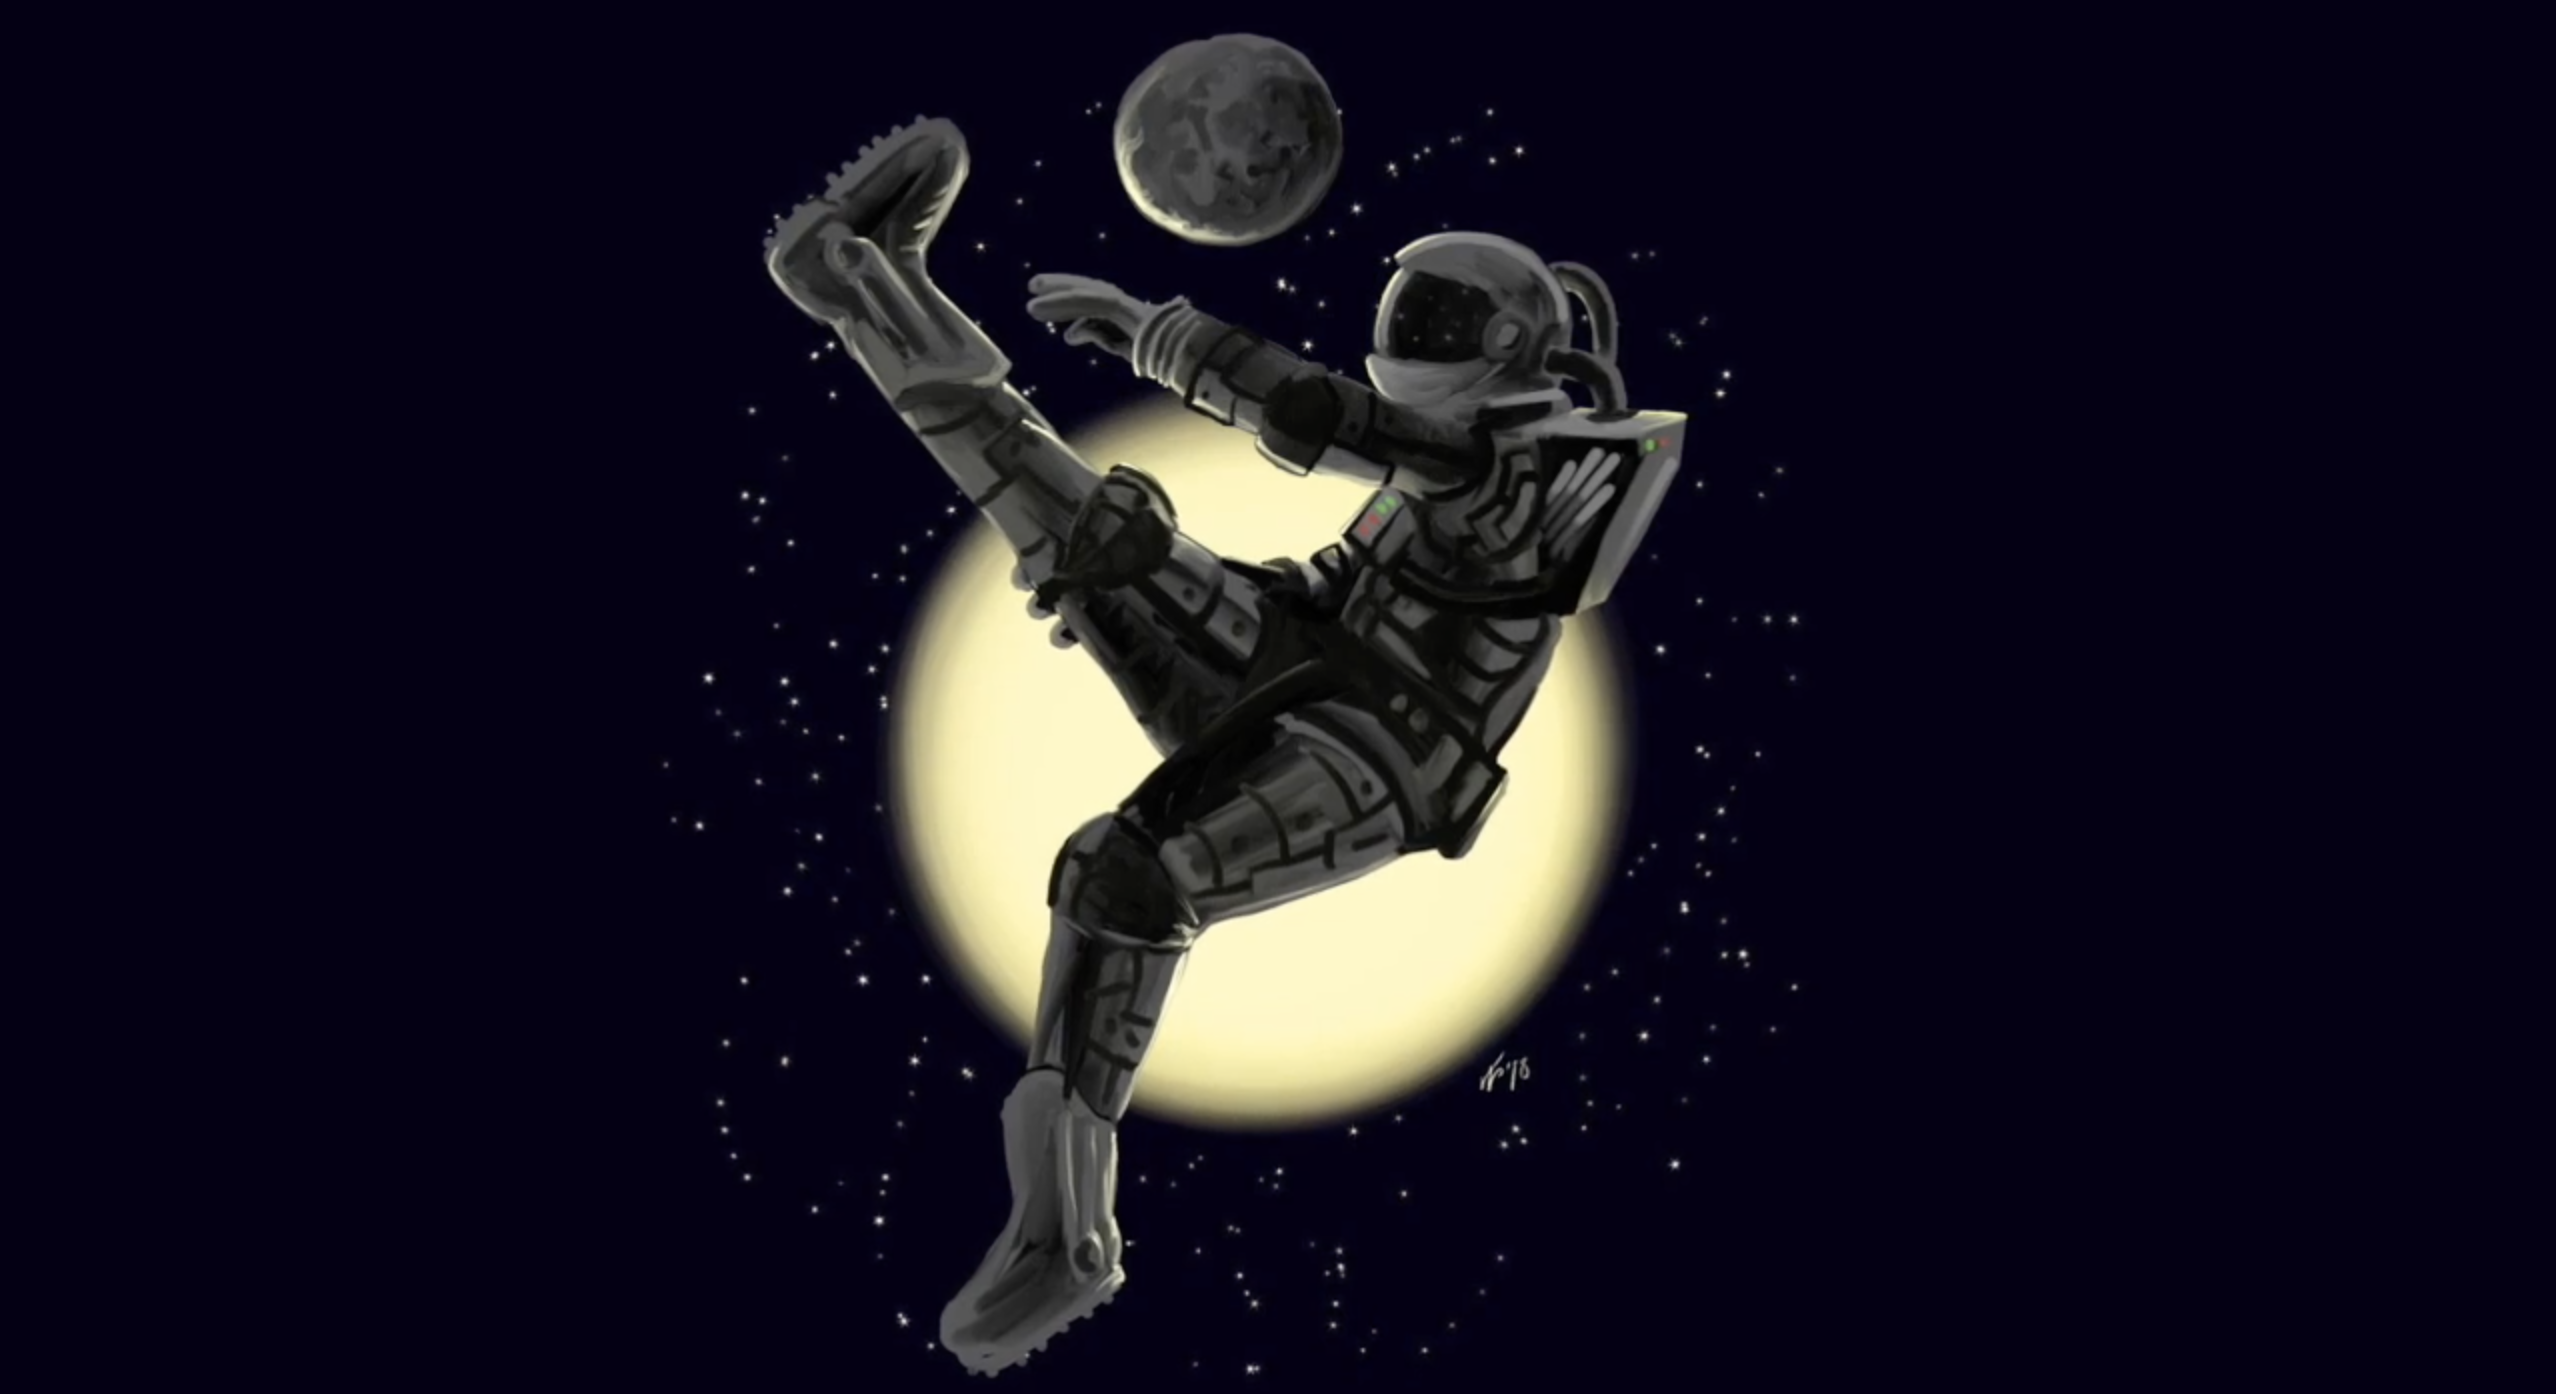 Outer Space Soccer Player Painting